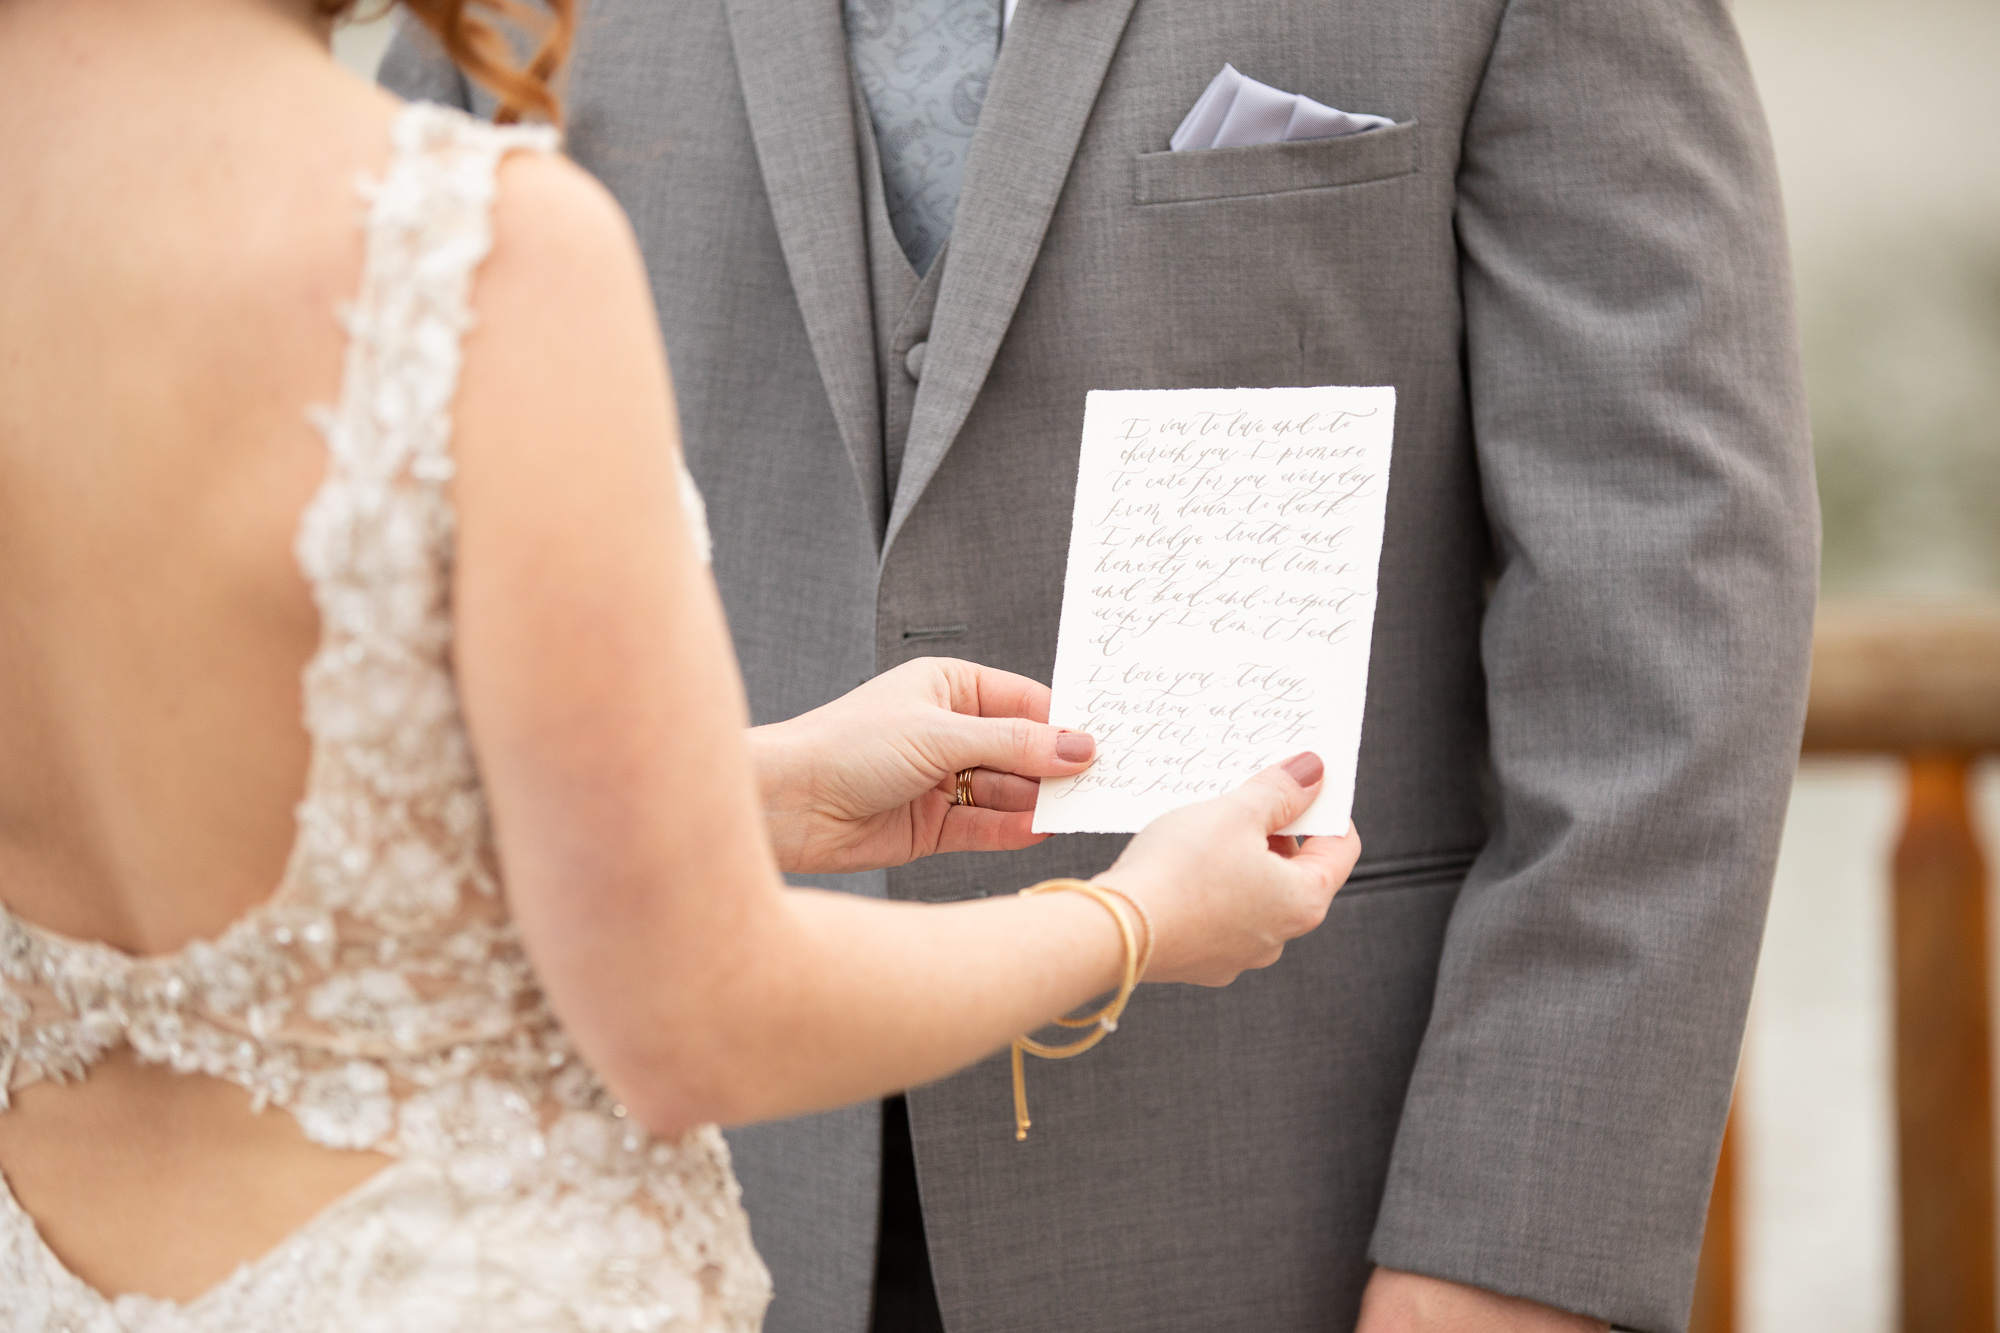 Wood & Grace wedding vows read by bride and groom.